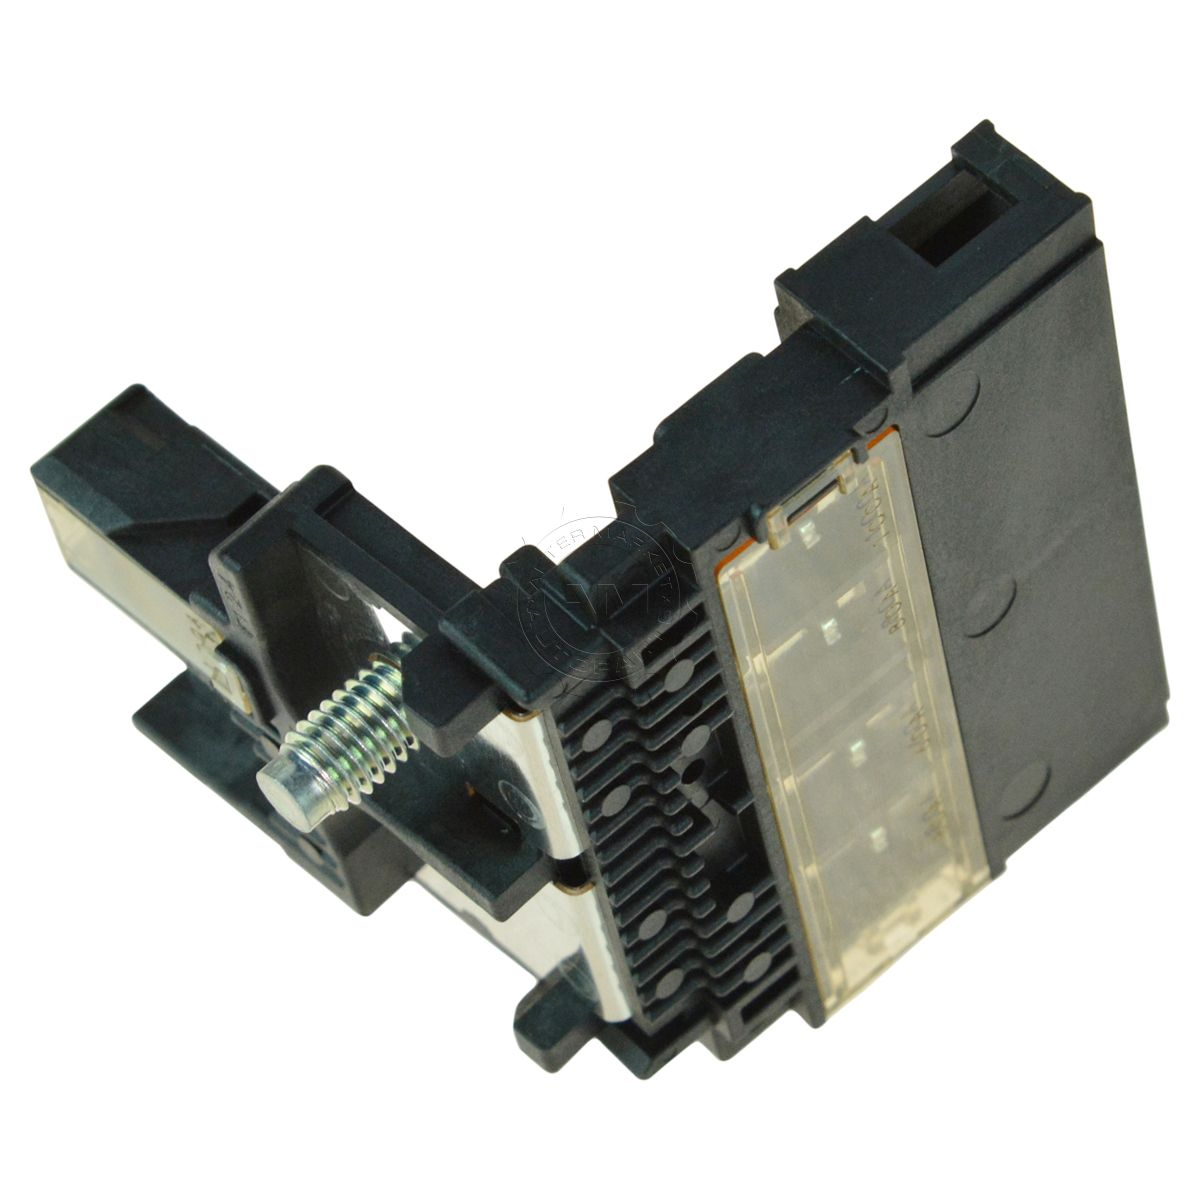 hight resolution of oem 24380 79912 fuse block holder connector link for murano note altima maxima